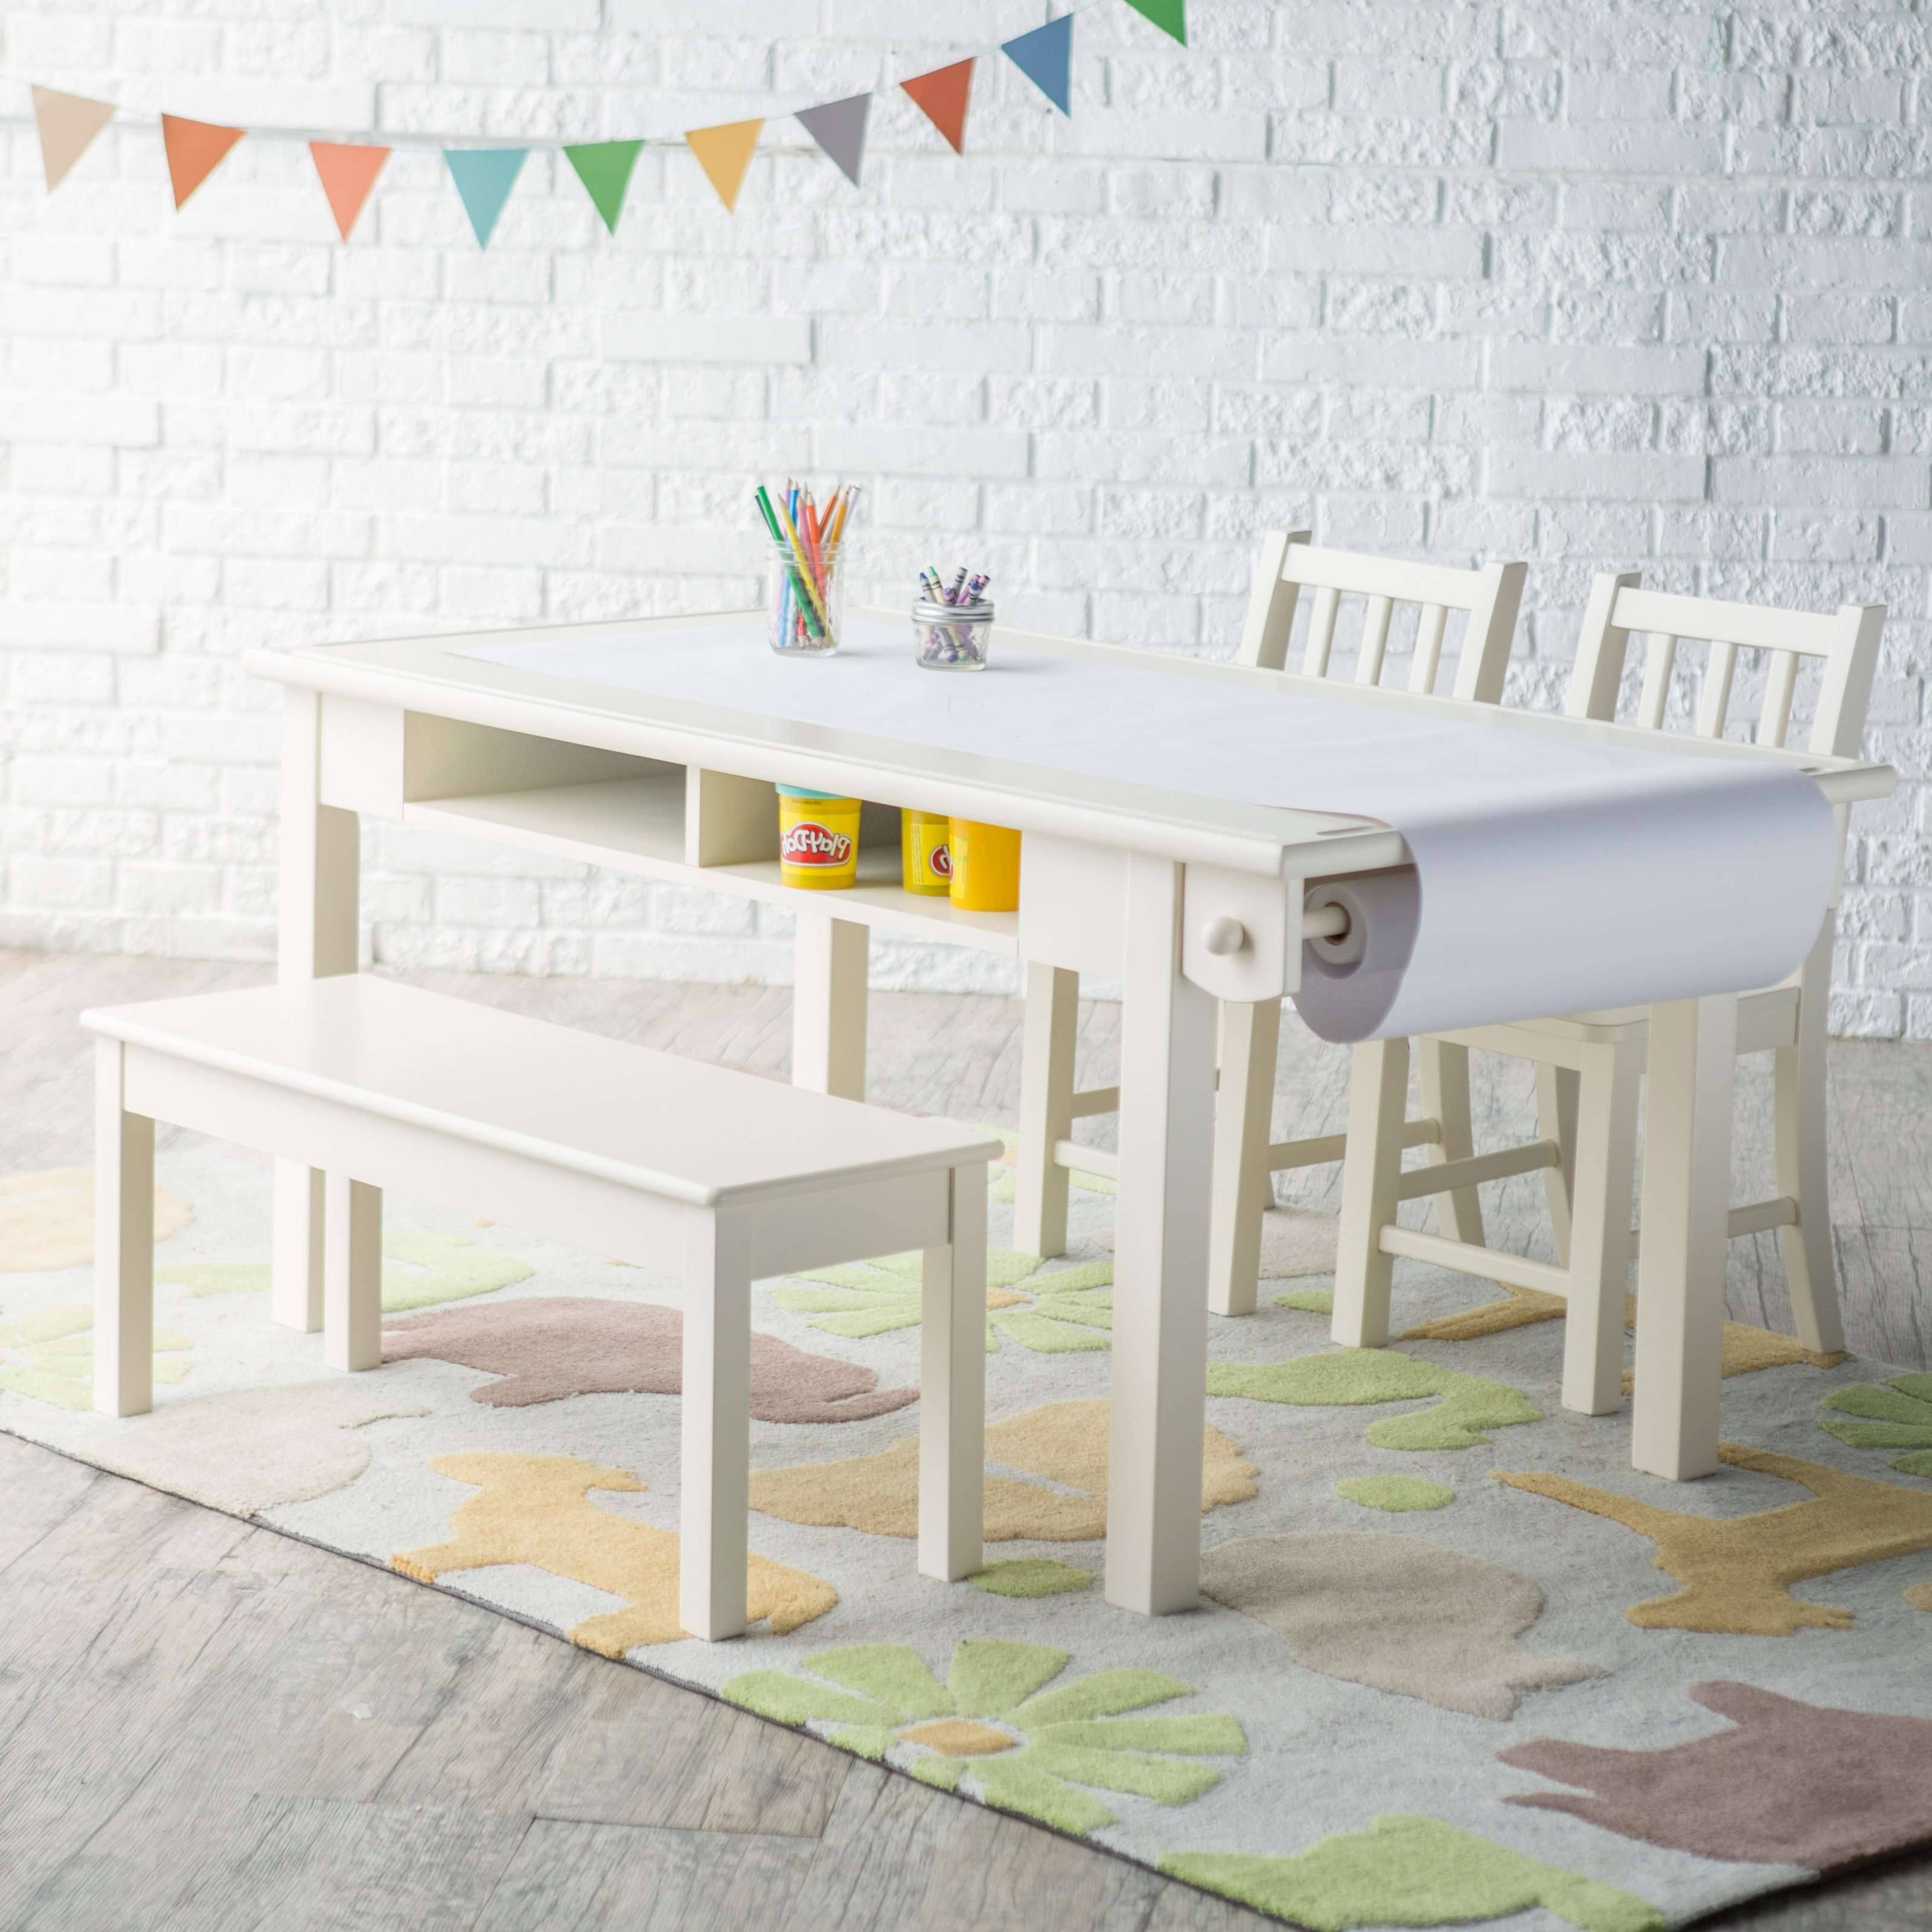 Good Kids Art Table Hd9h19 – Tjihome For Current Kids Coffee Tables (View 18 of 20)